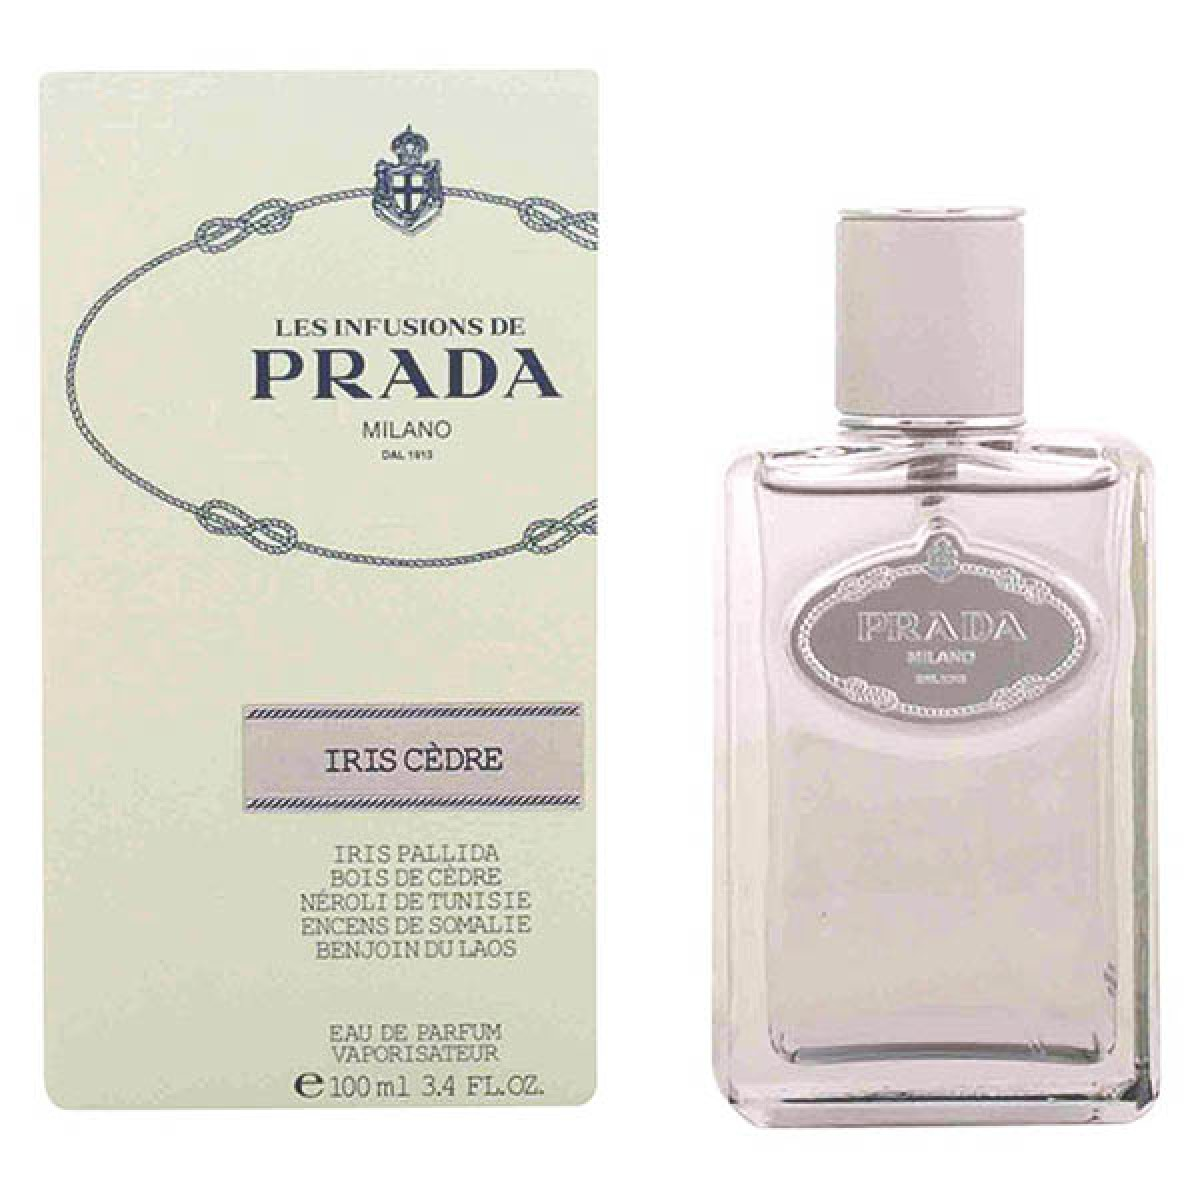 Herreparfume Iris Cedre Prada EDT - Kapacitet: 100 ml